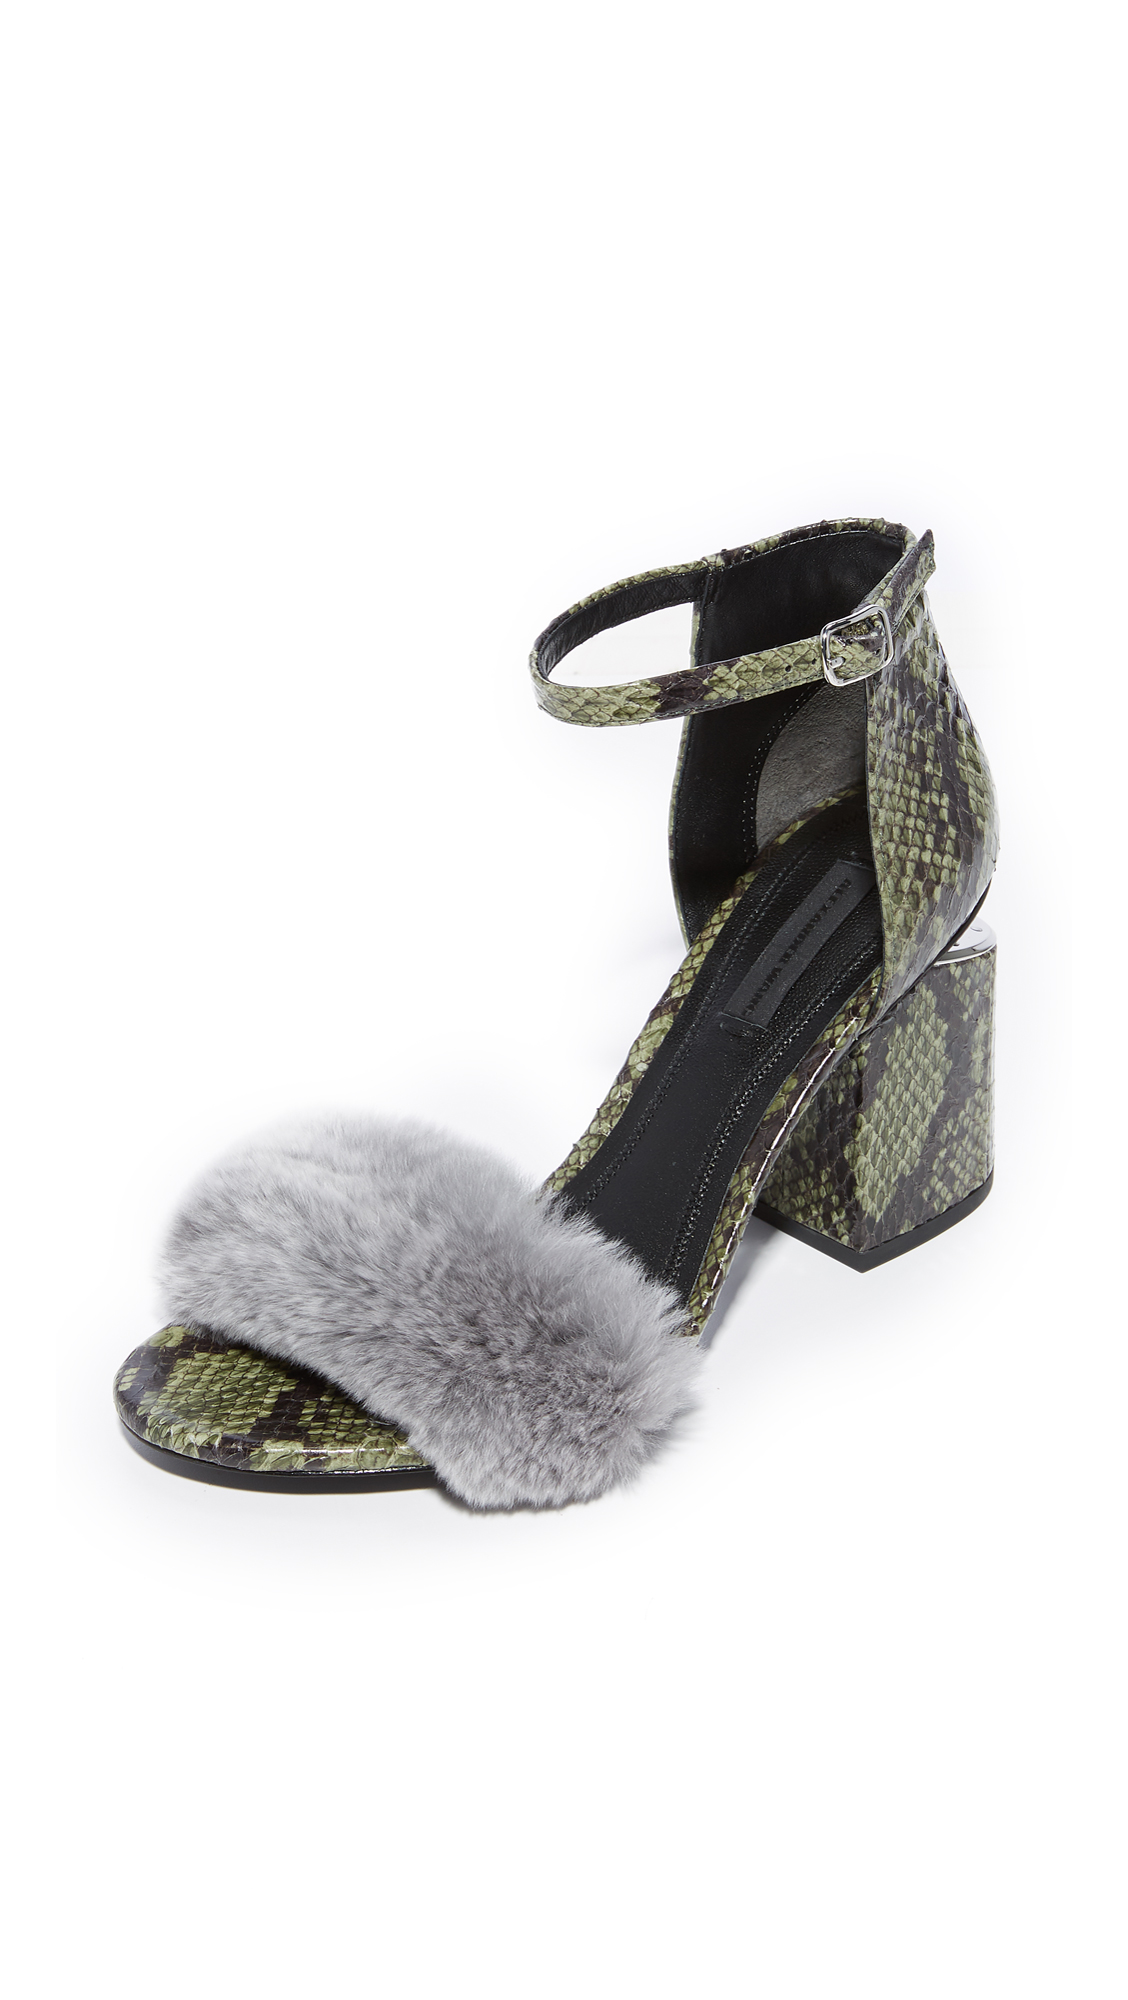 Alexander Wang Abby Ankle Strap Sandals - Army/Grey